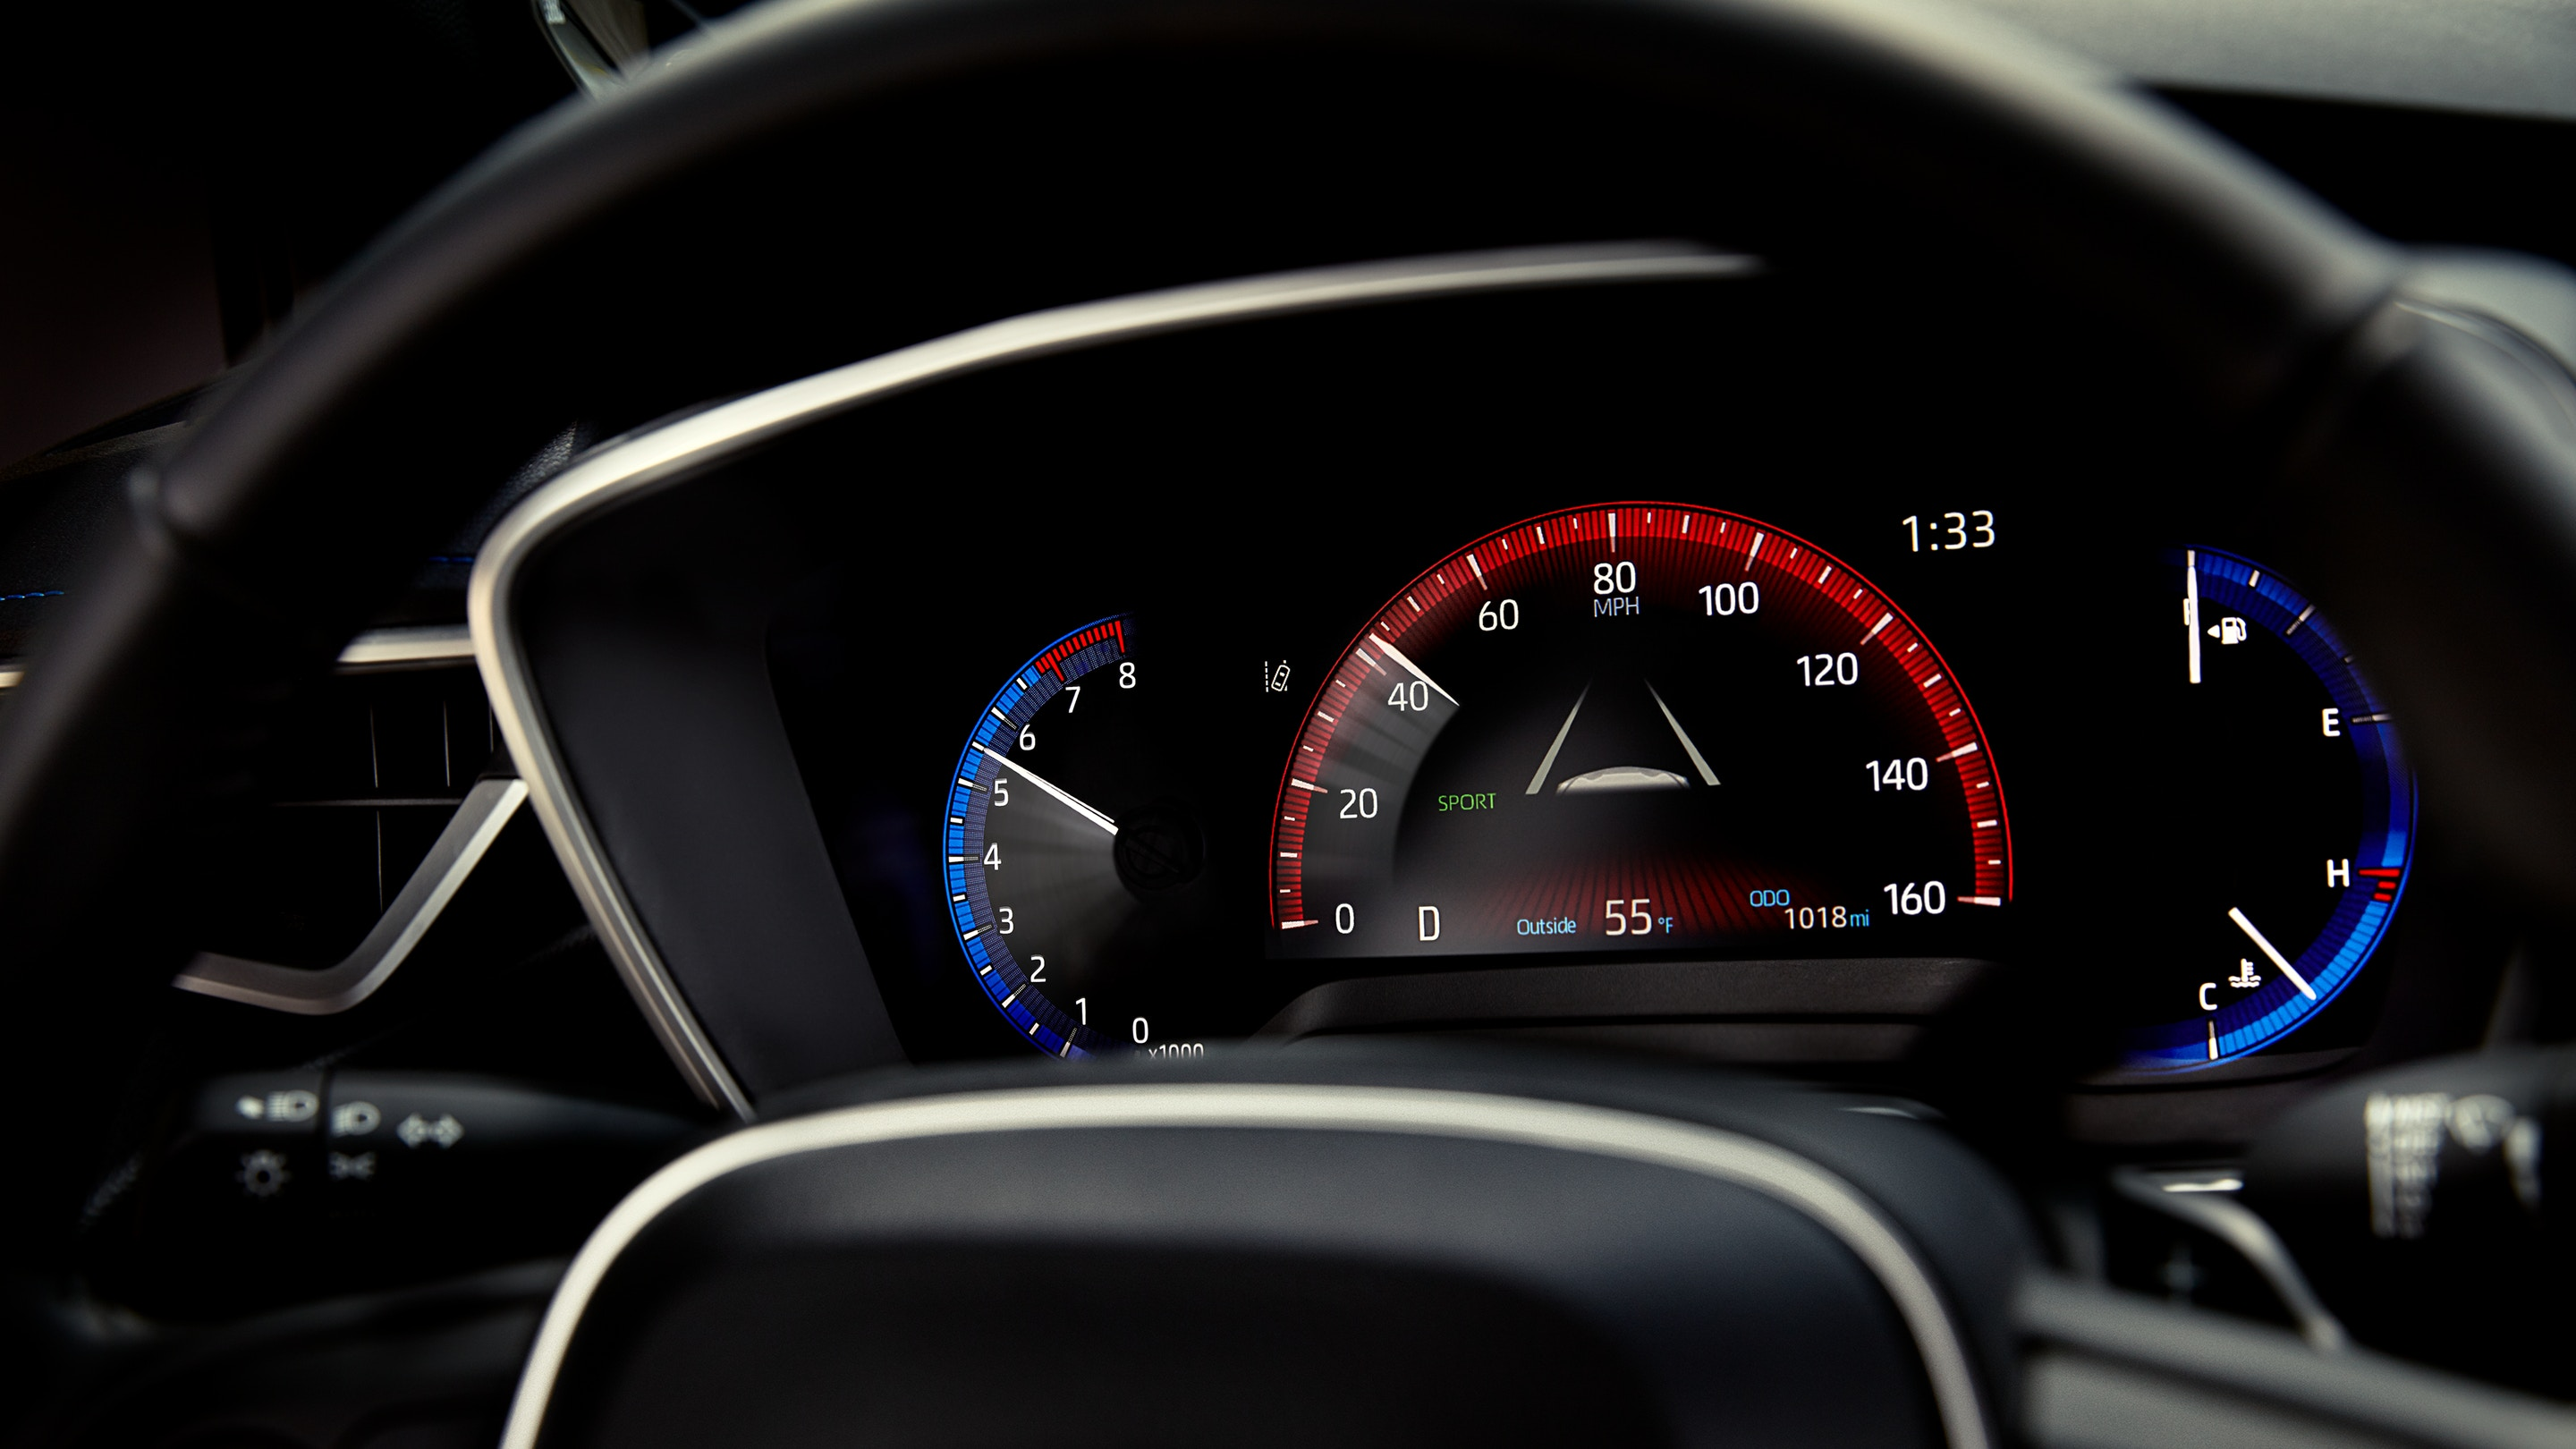 Instrument Panel in the 2020 Toyota Sienna